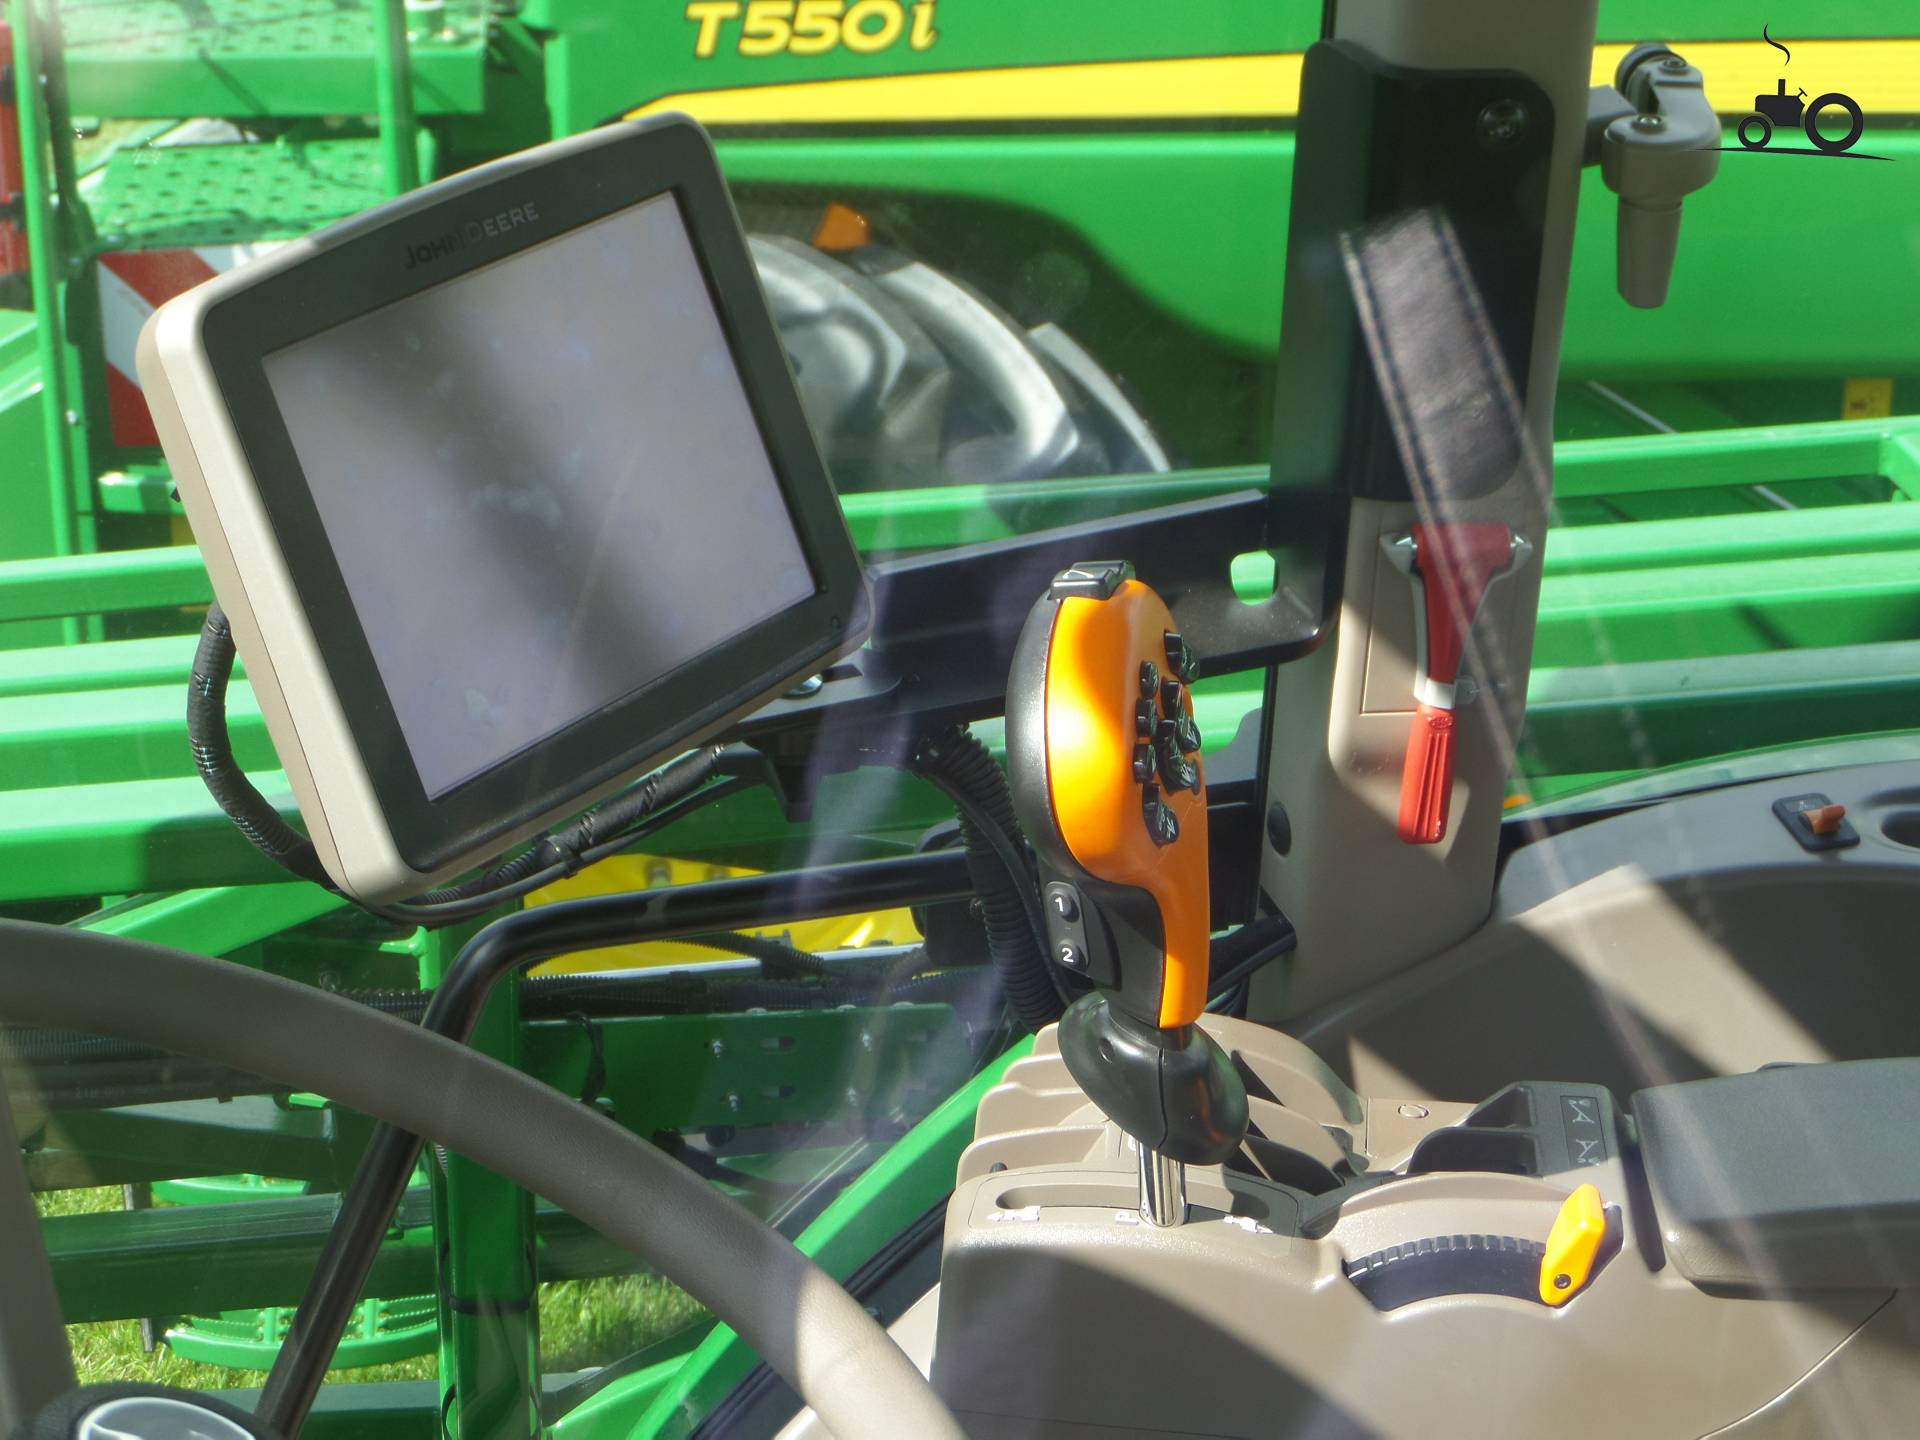 John deere interieur foto van jd6930 2015 for Interieur van nu